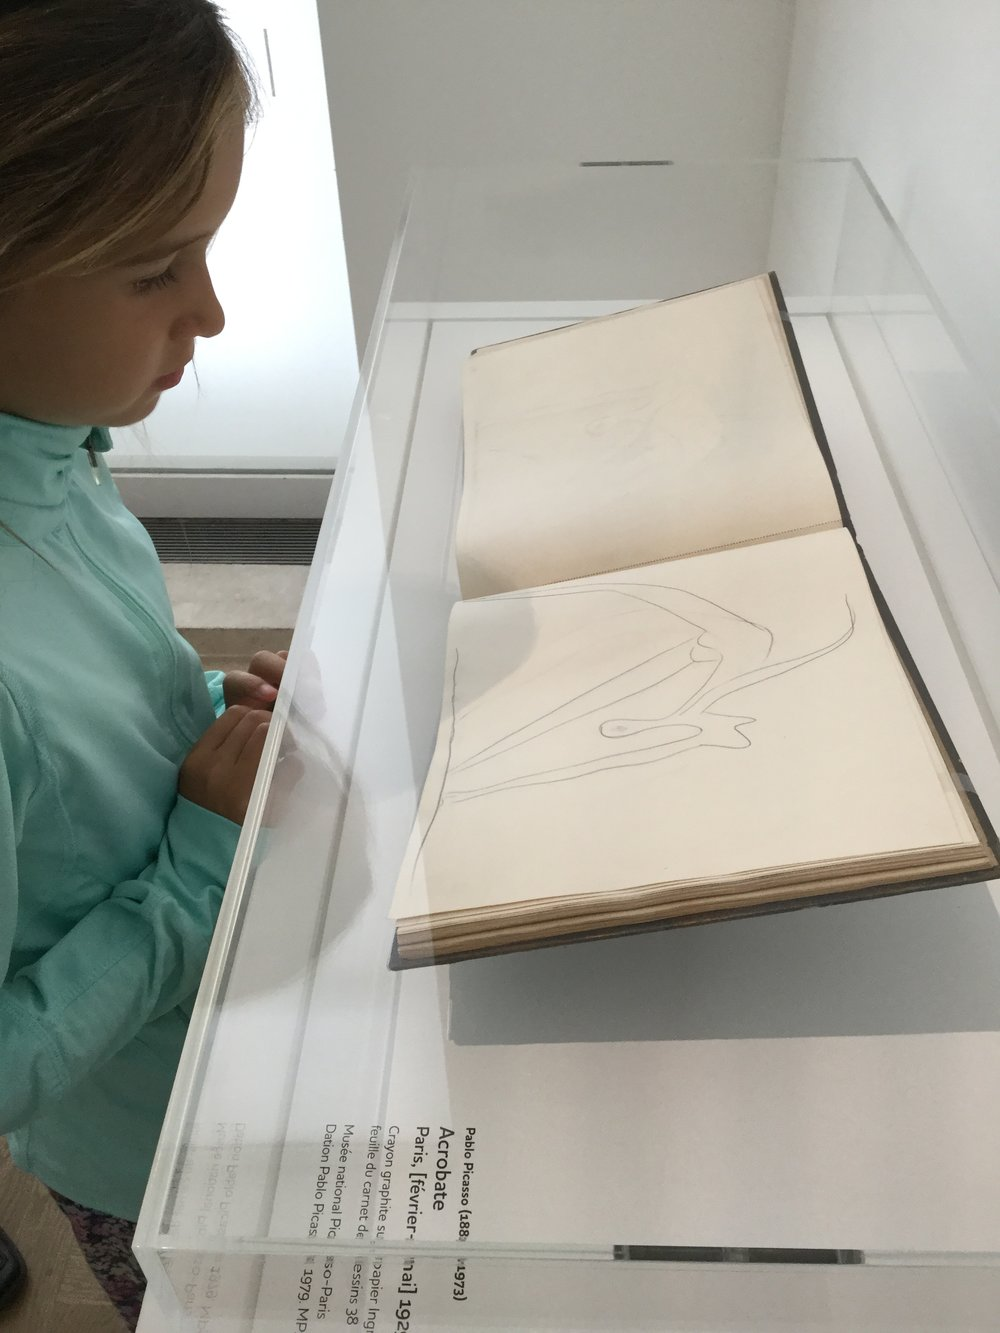 Lili looking at one of Picasso's notebooks. We said that she could also draw like that. And then we said that she could also do the pose the acrobat is in!